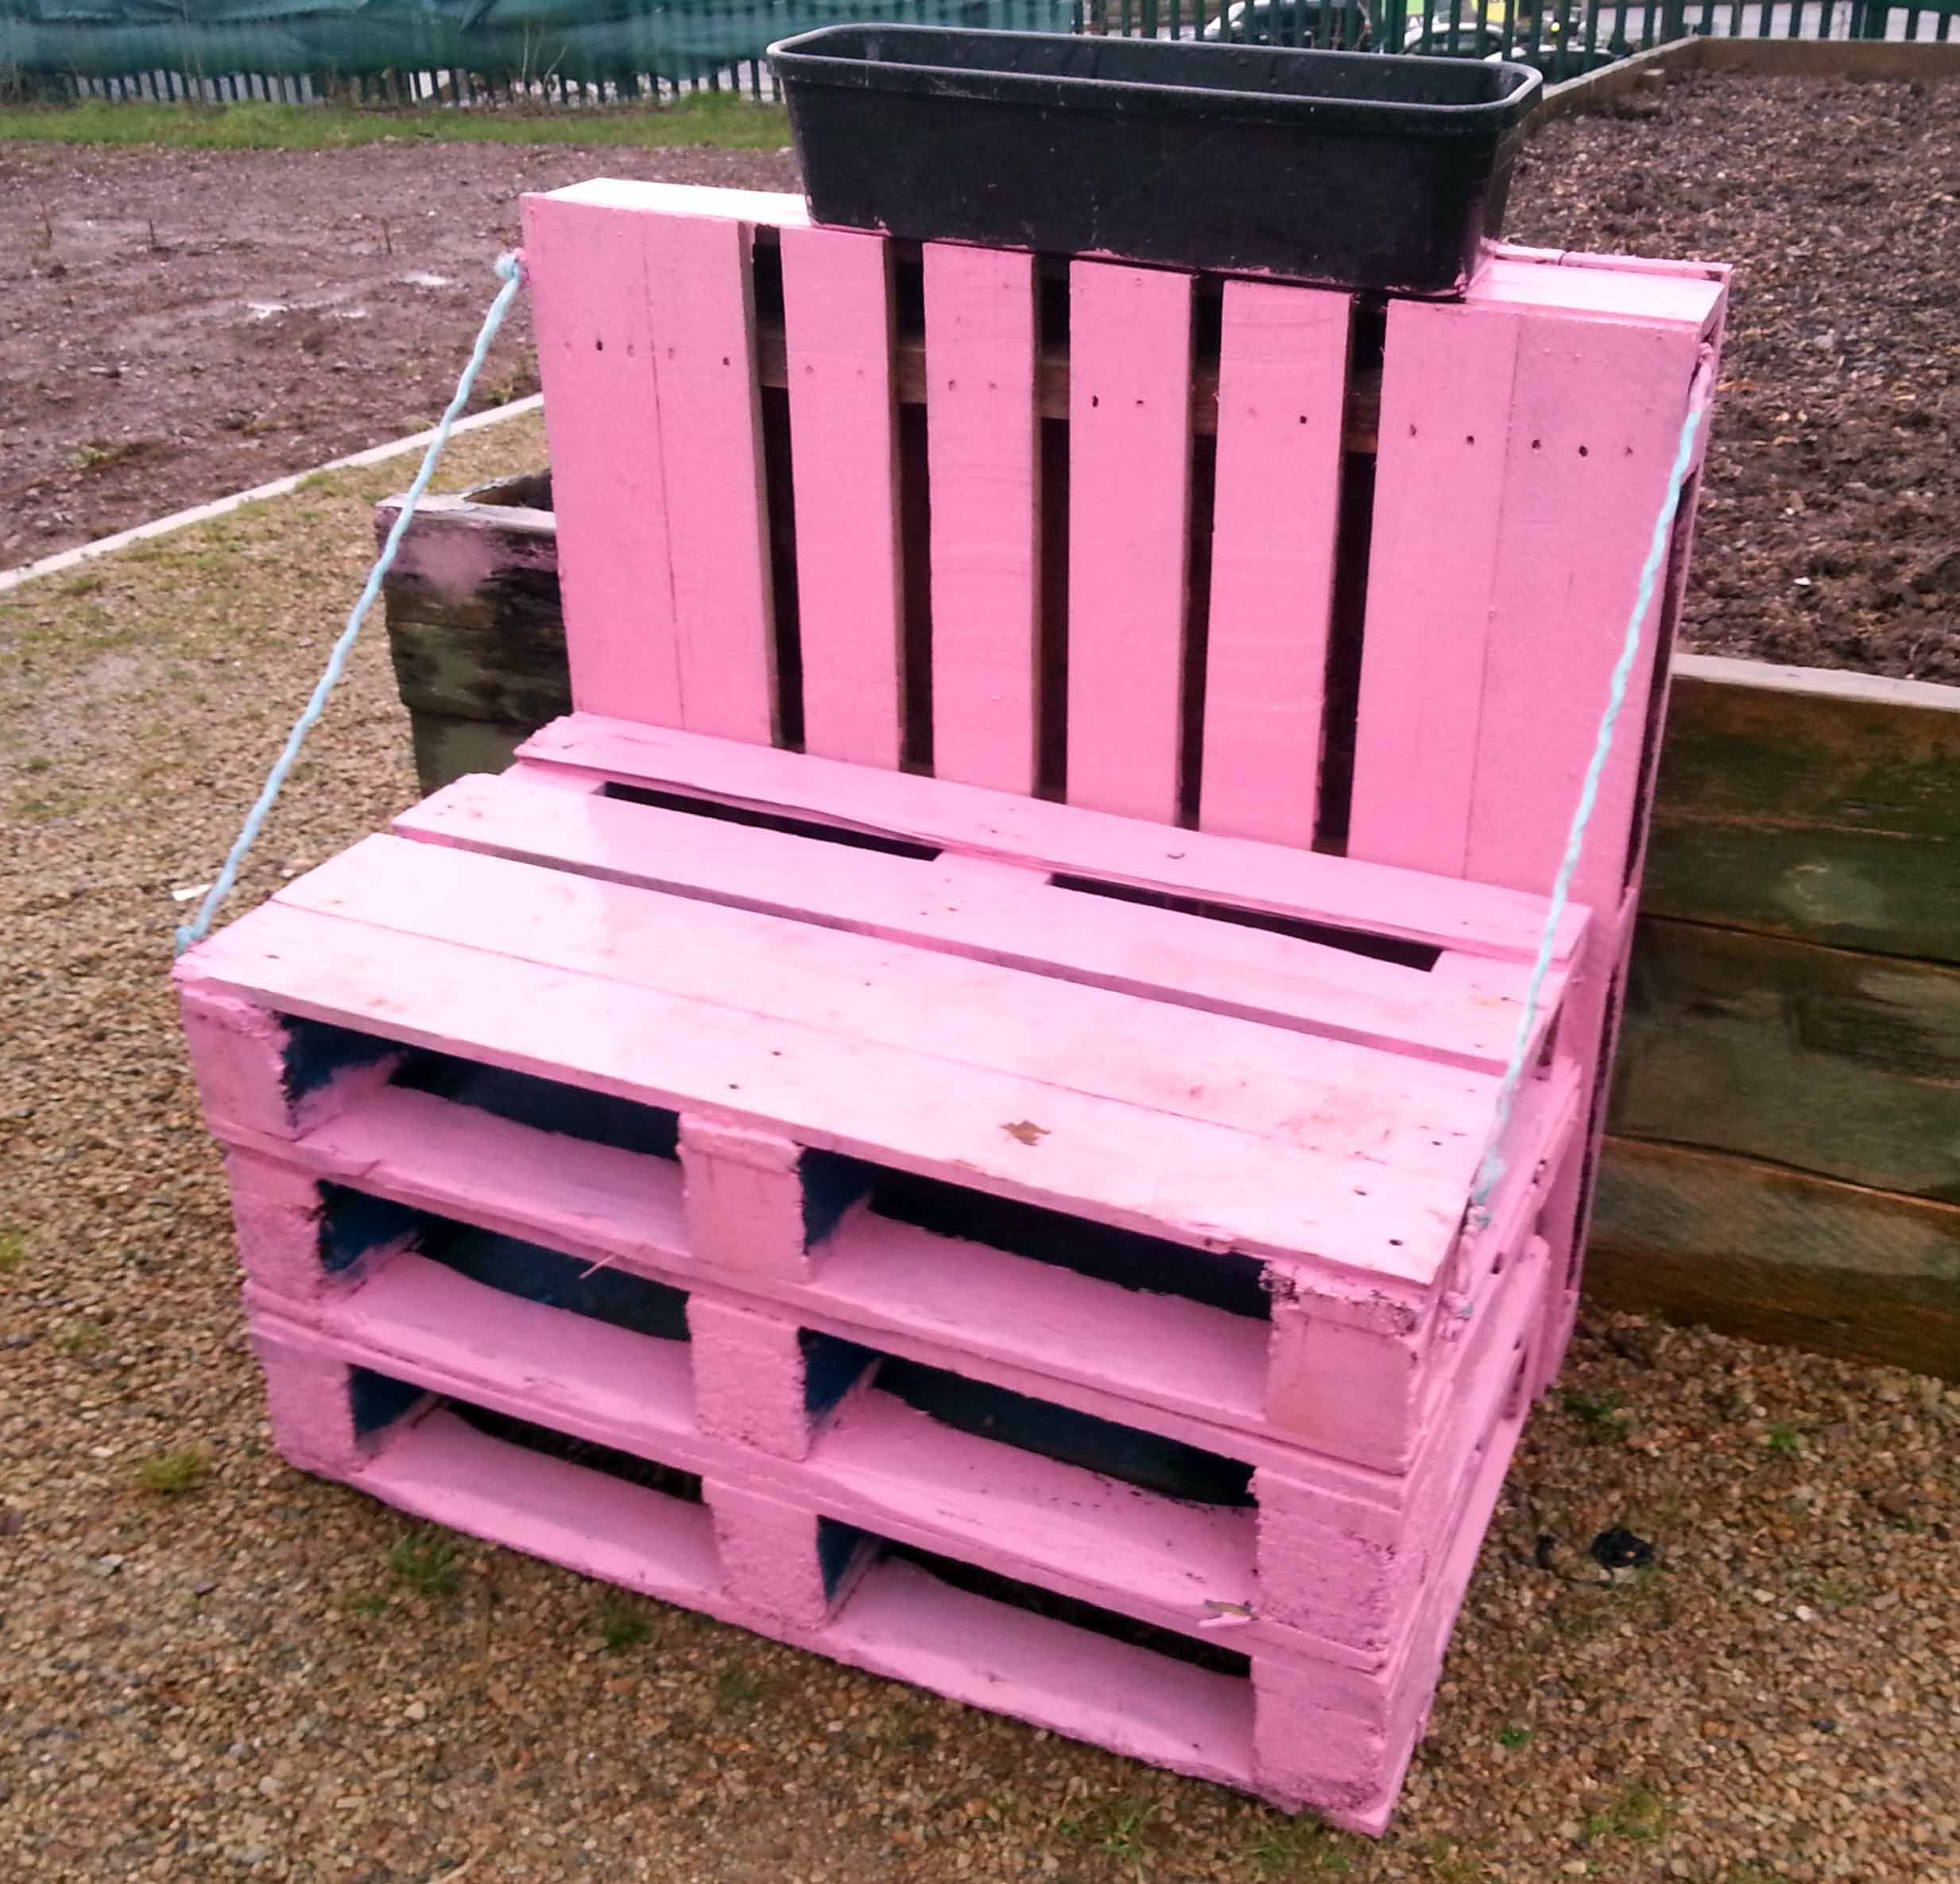 http://greensideup.ie/media/Pink-Pallets.jpg